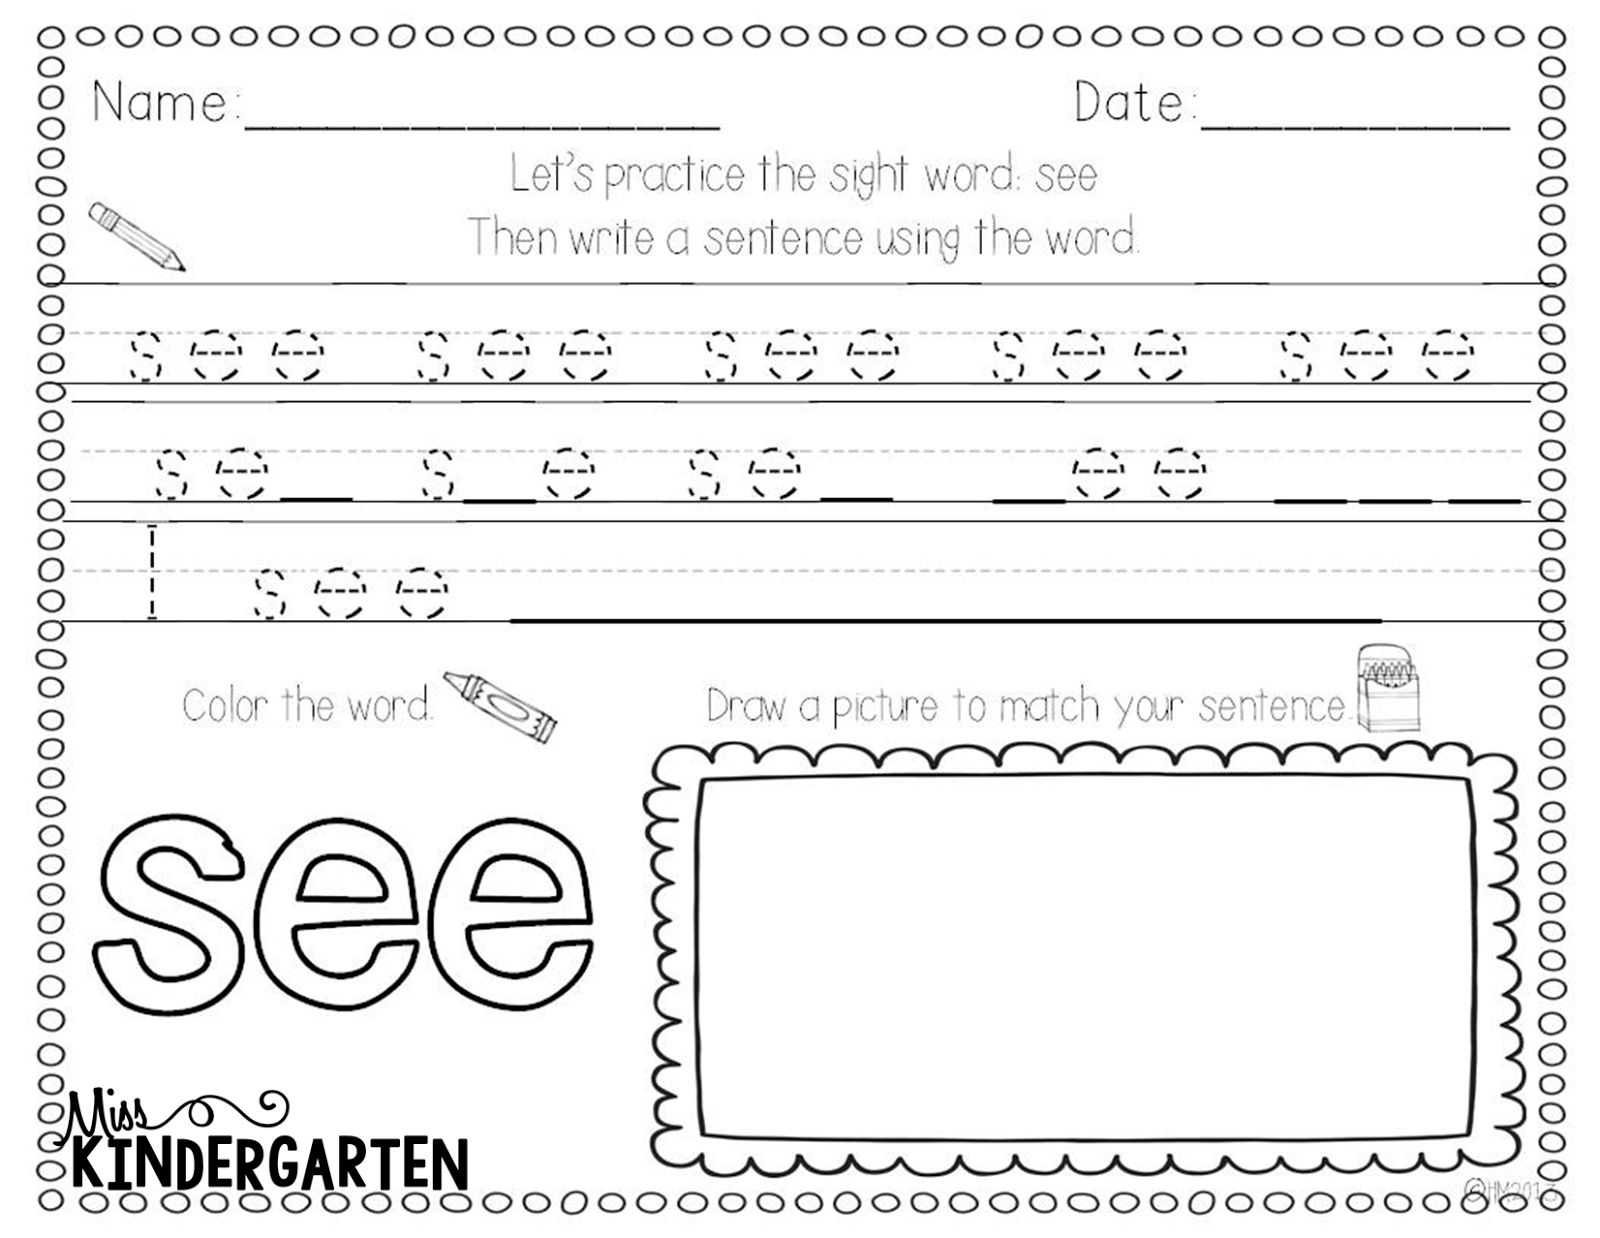 Sight Word Practice Miss Kindergarten – Sight Word Worksheets for Kindergarten